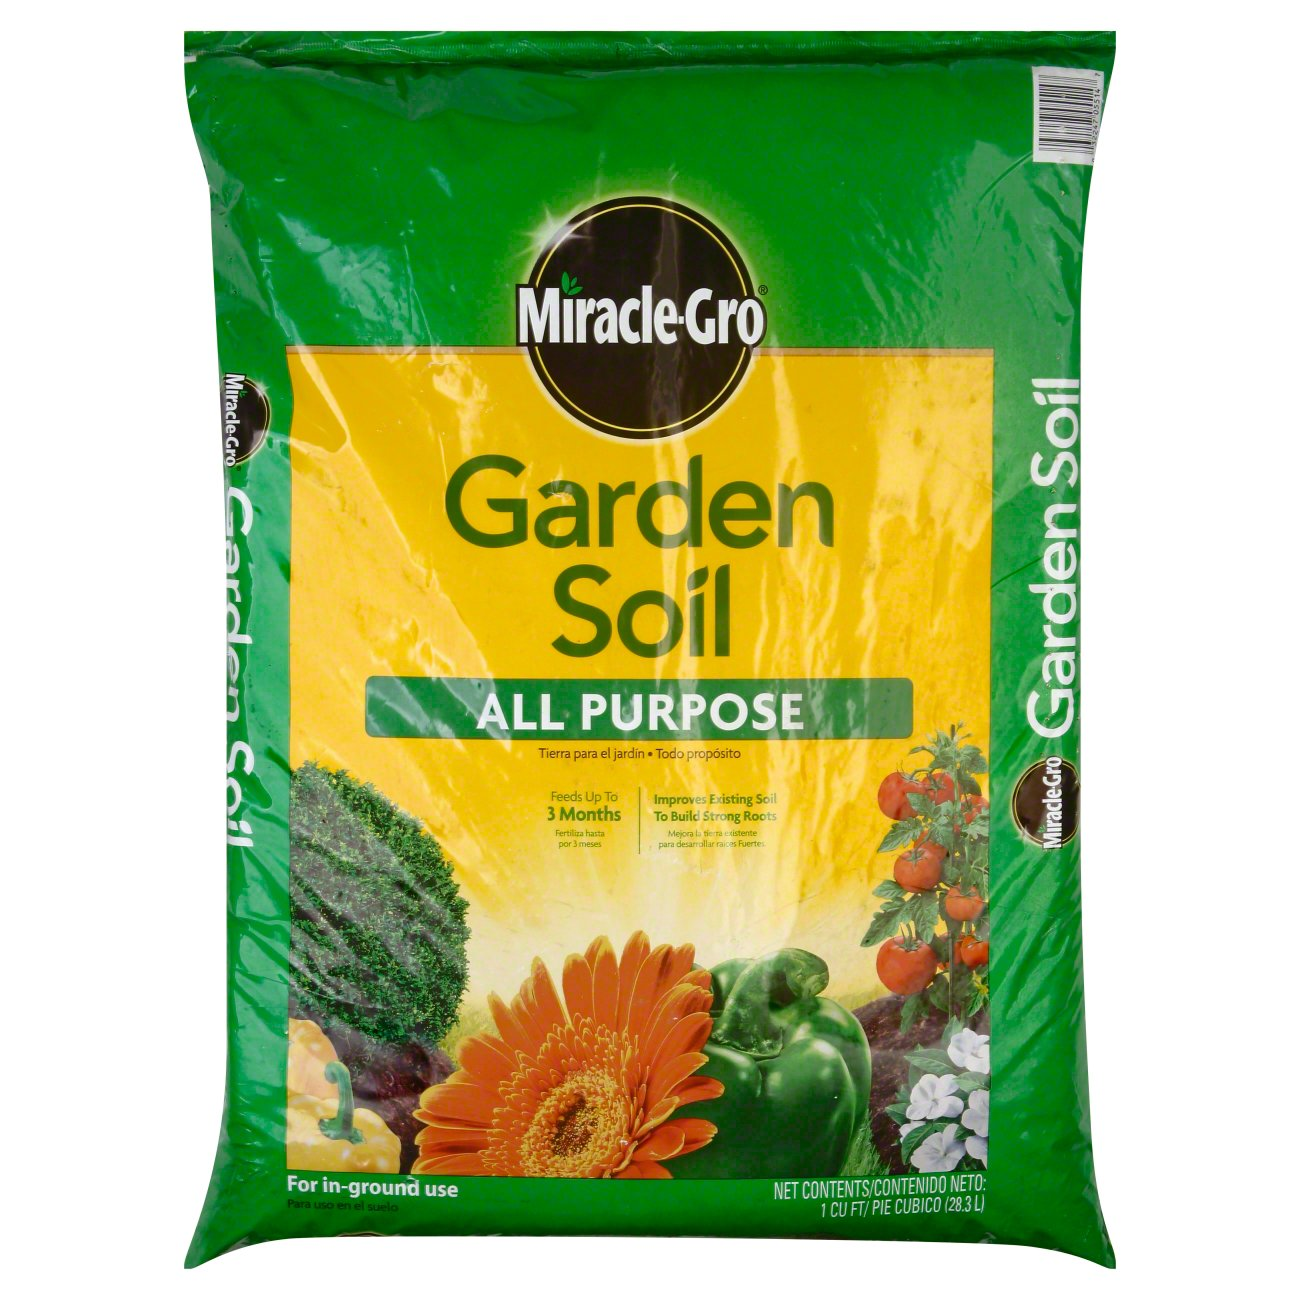 Miracle-Gro All Purpose Garden Soil - Shop Soil, Fertilizer, and Lawn Care at HEB